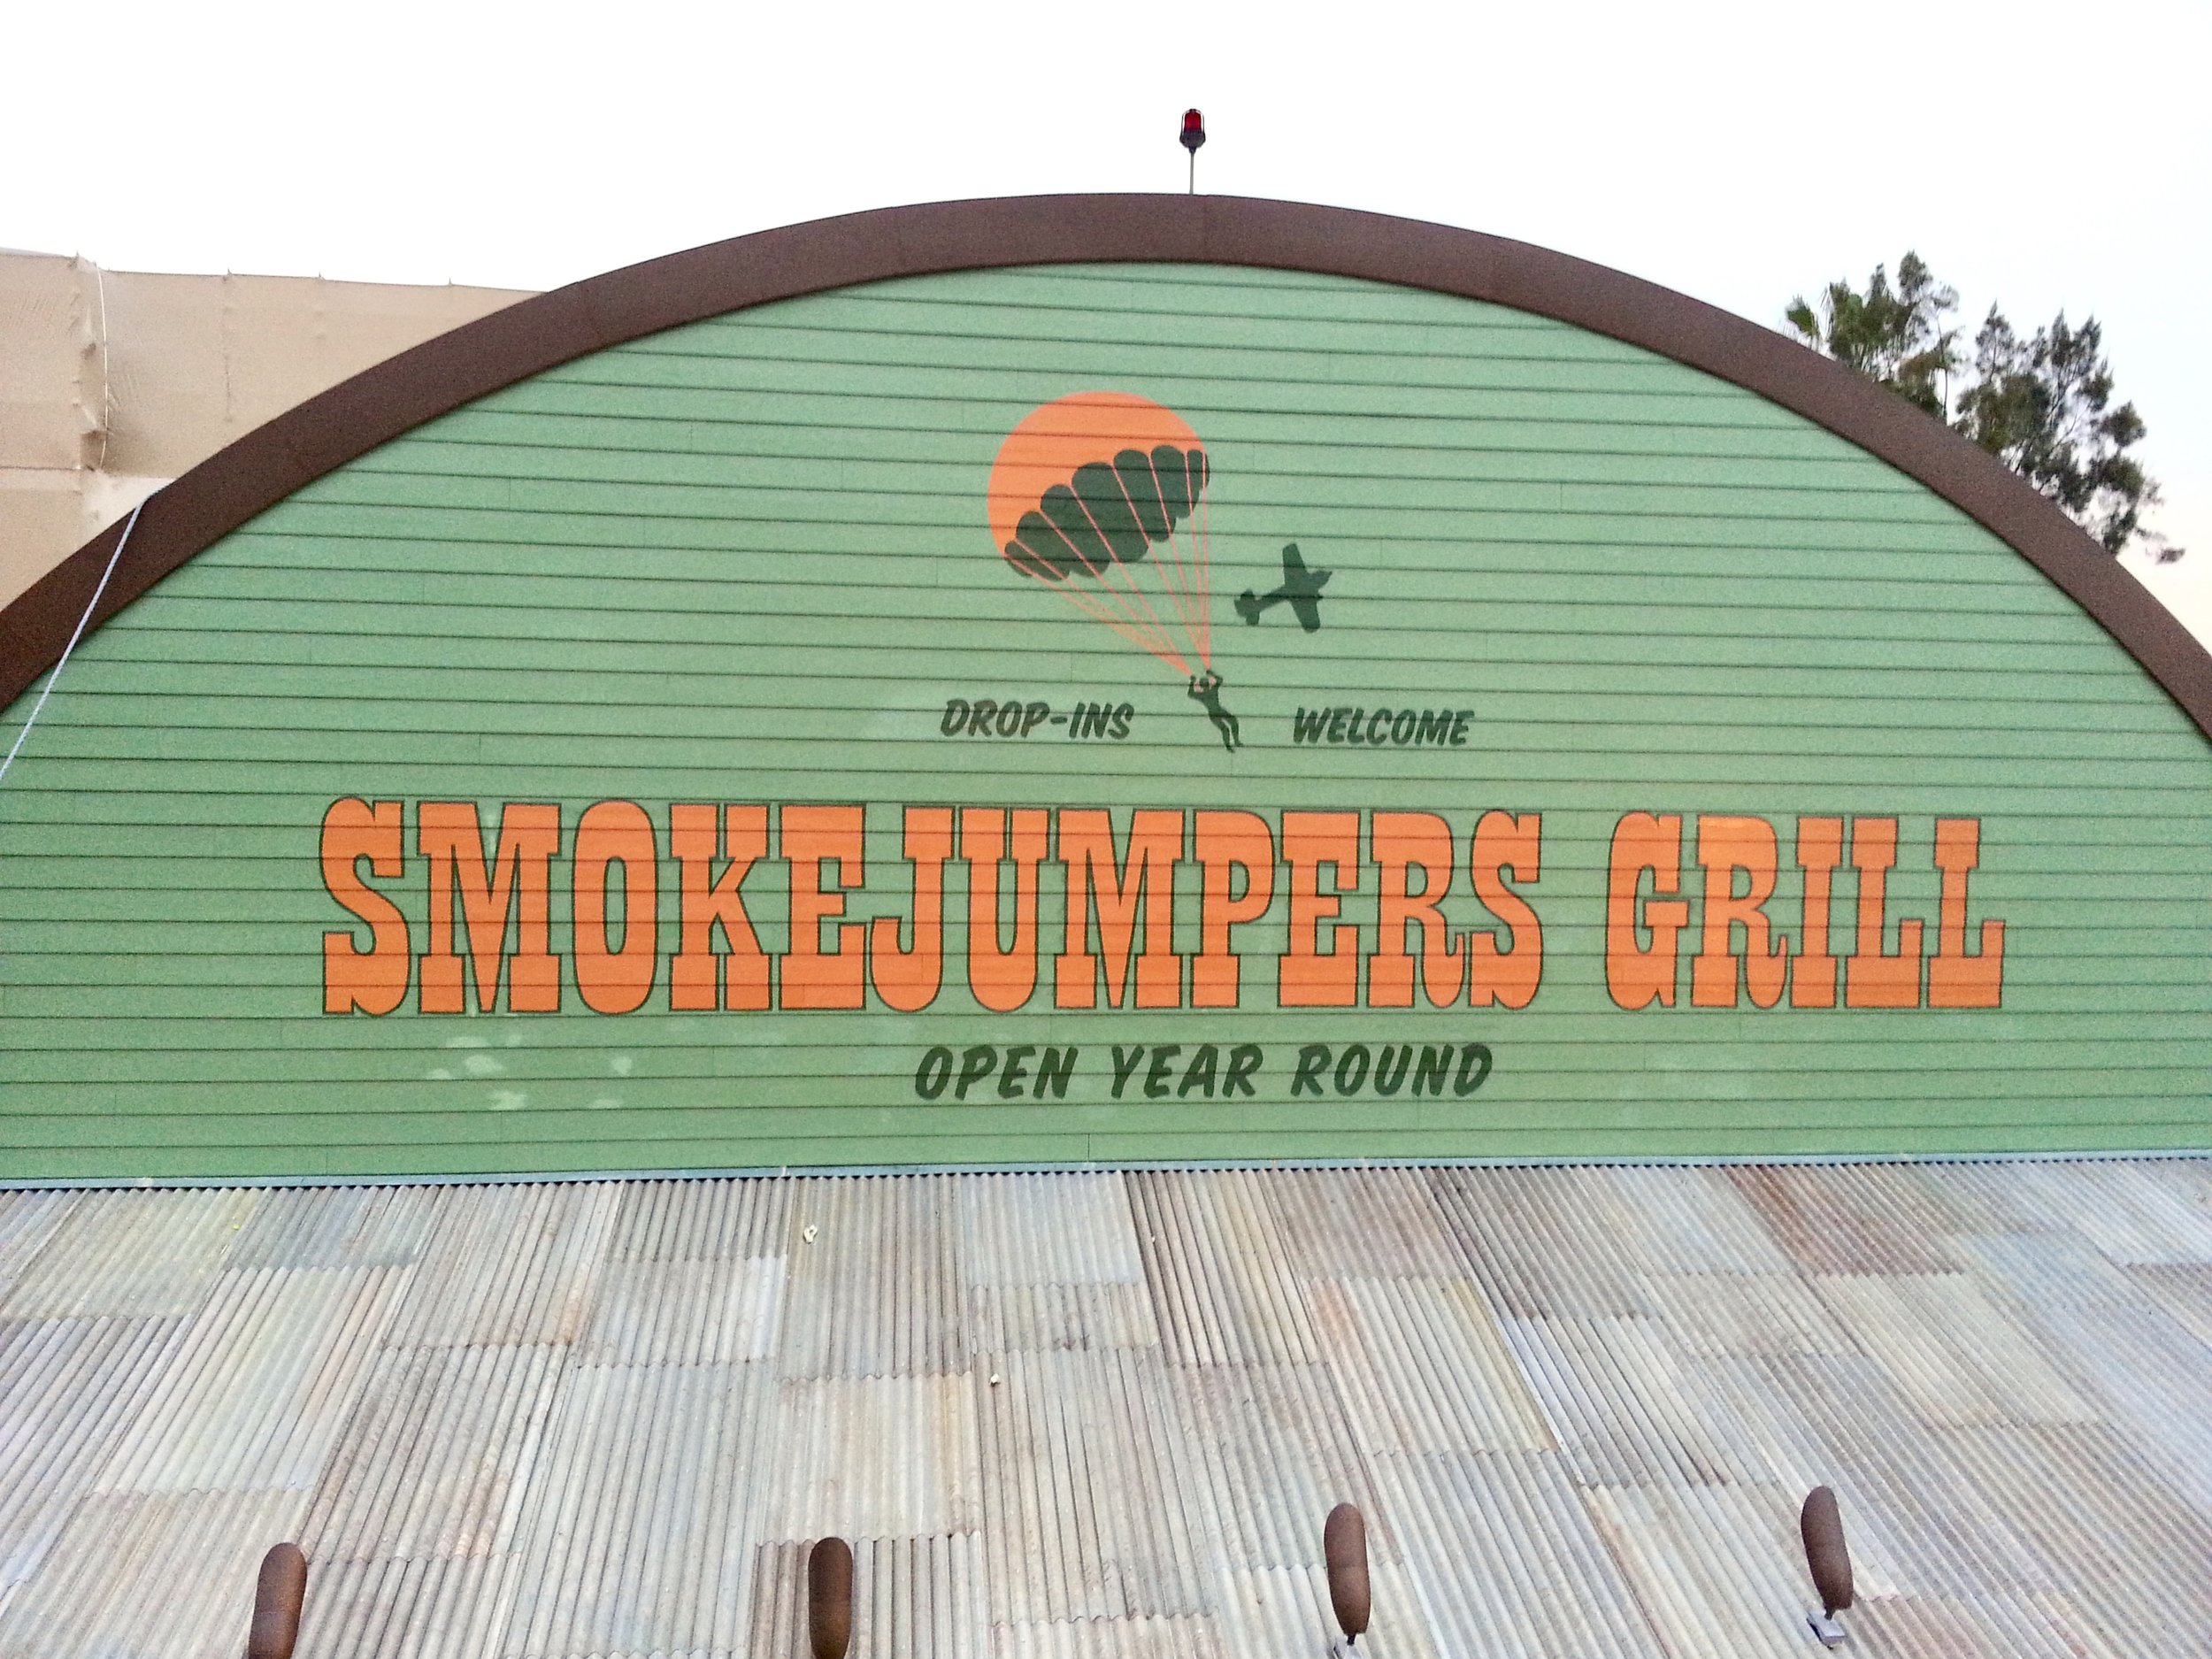 Smokejumpers Grill exterior hand painted distressed wall graphics